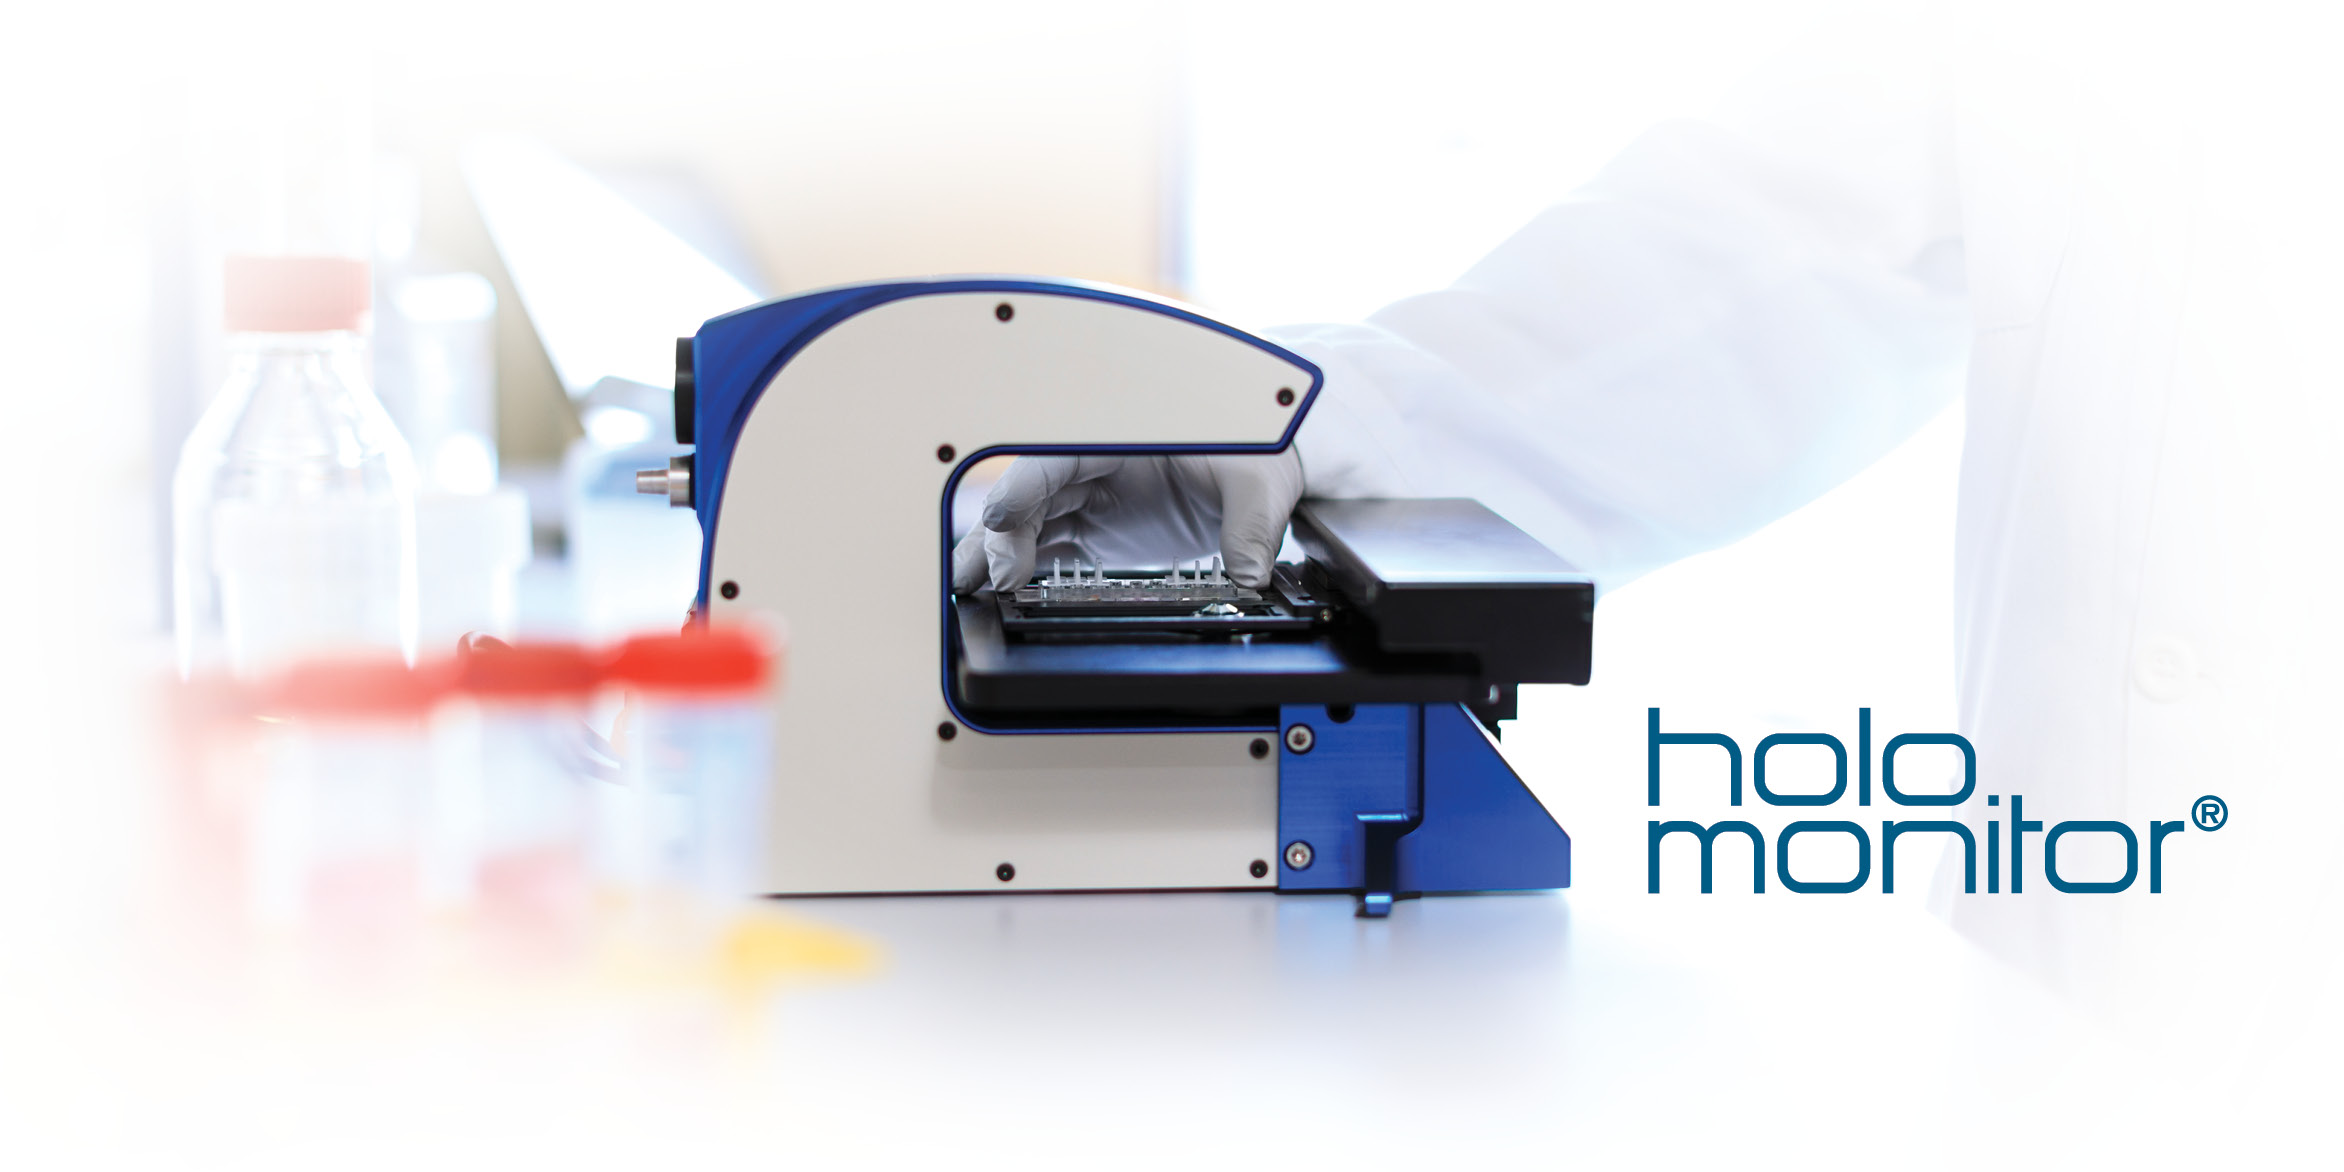 The HoloMonitor M4 live cell imager